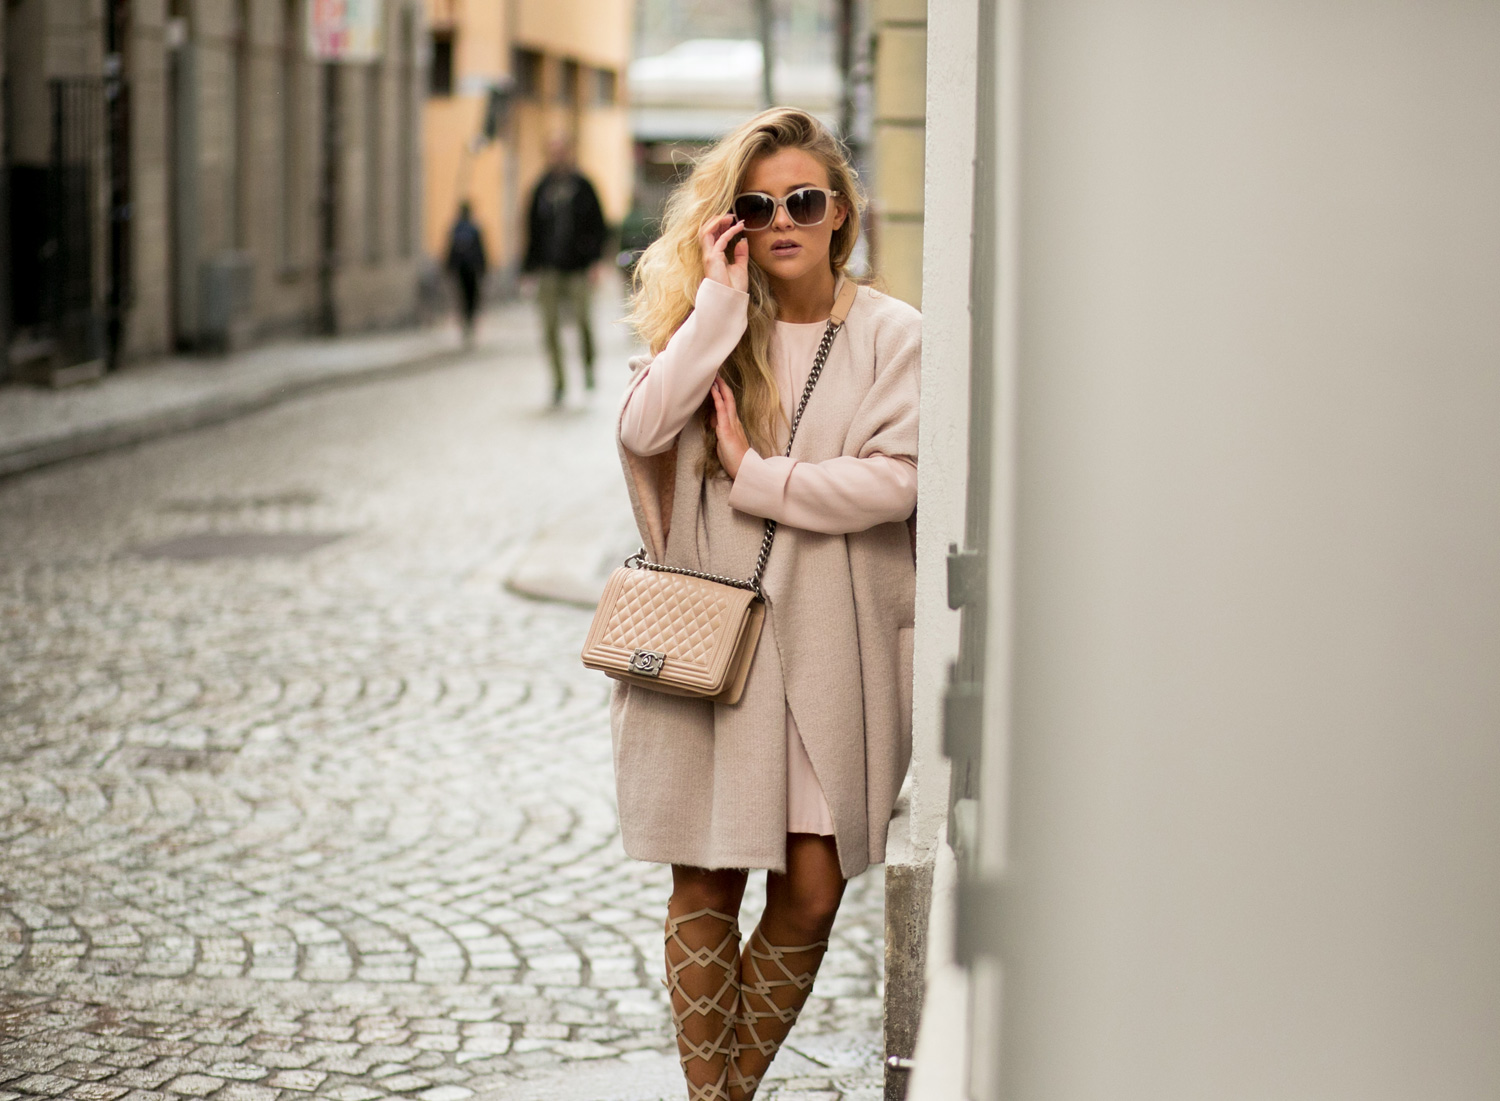 017-stockholm-blogger-fashion.jpg